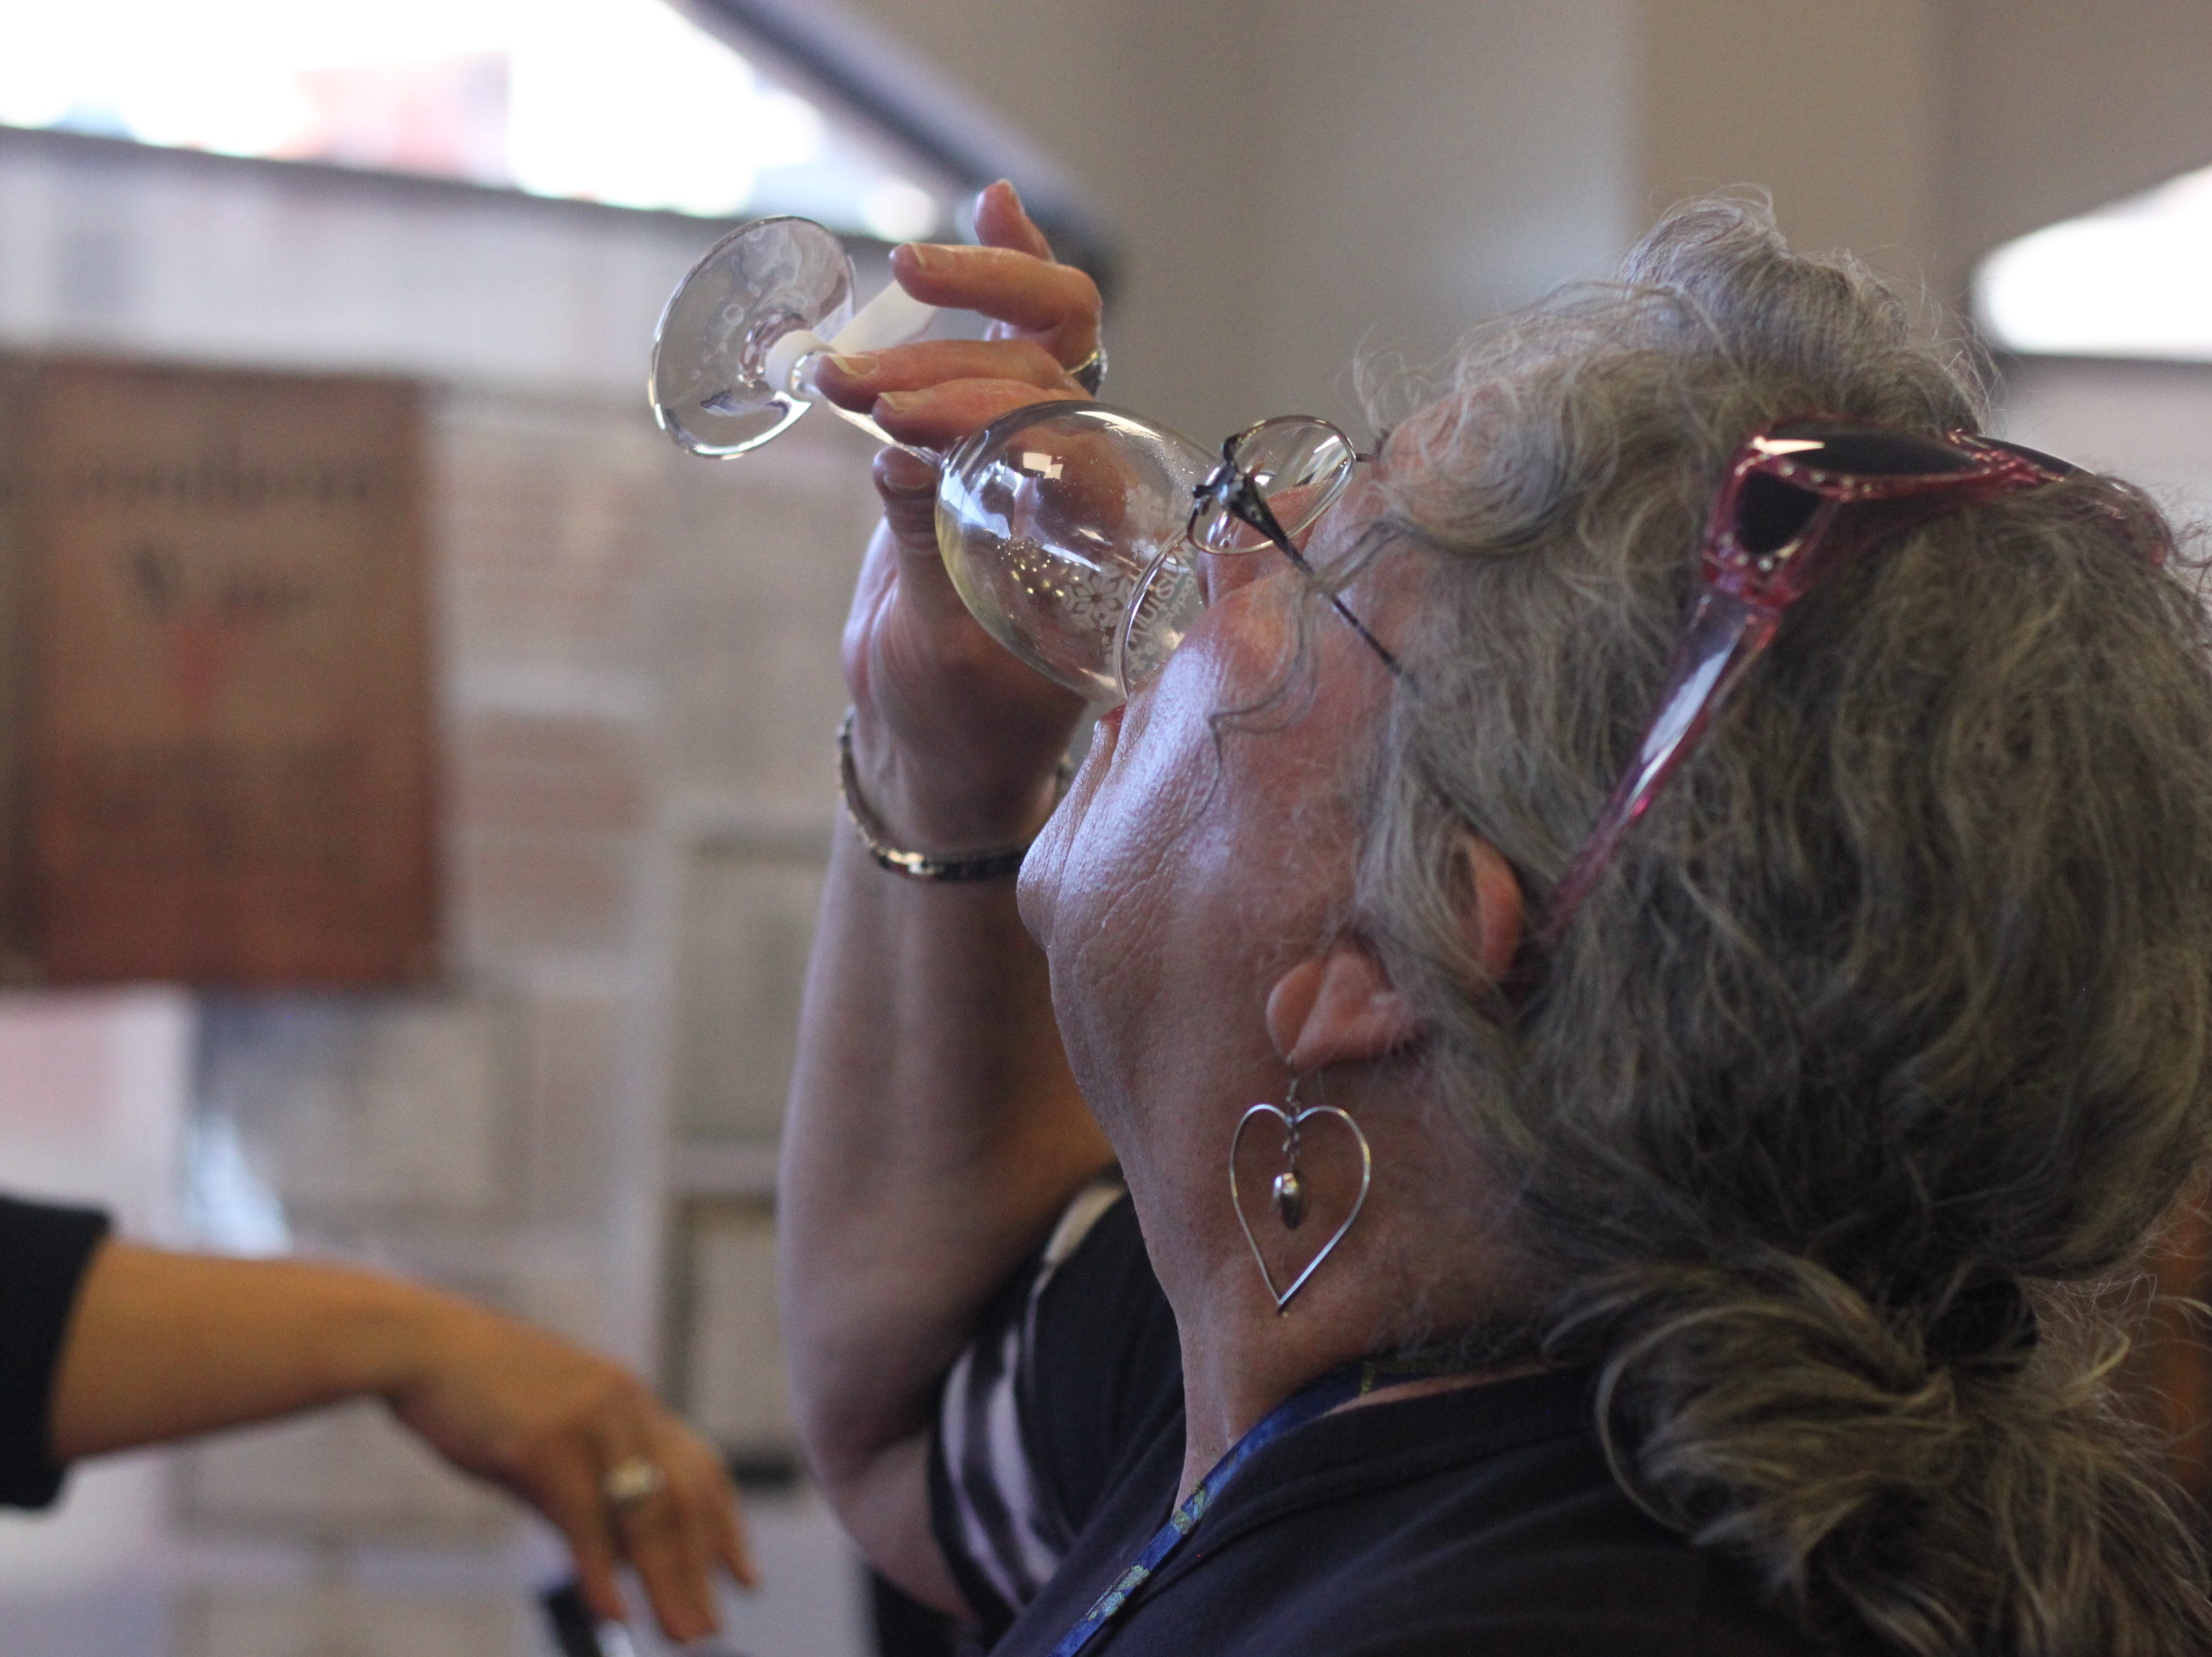 Attendees sample New Mexico wines and browse various craft vendors at Carlsbad's annual Winter Wine Festival, Dec. 1, 2018 at the Pecos River Village Conference Center.